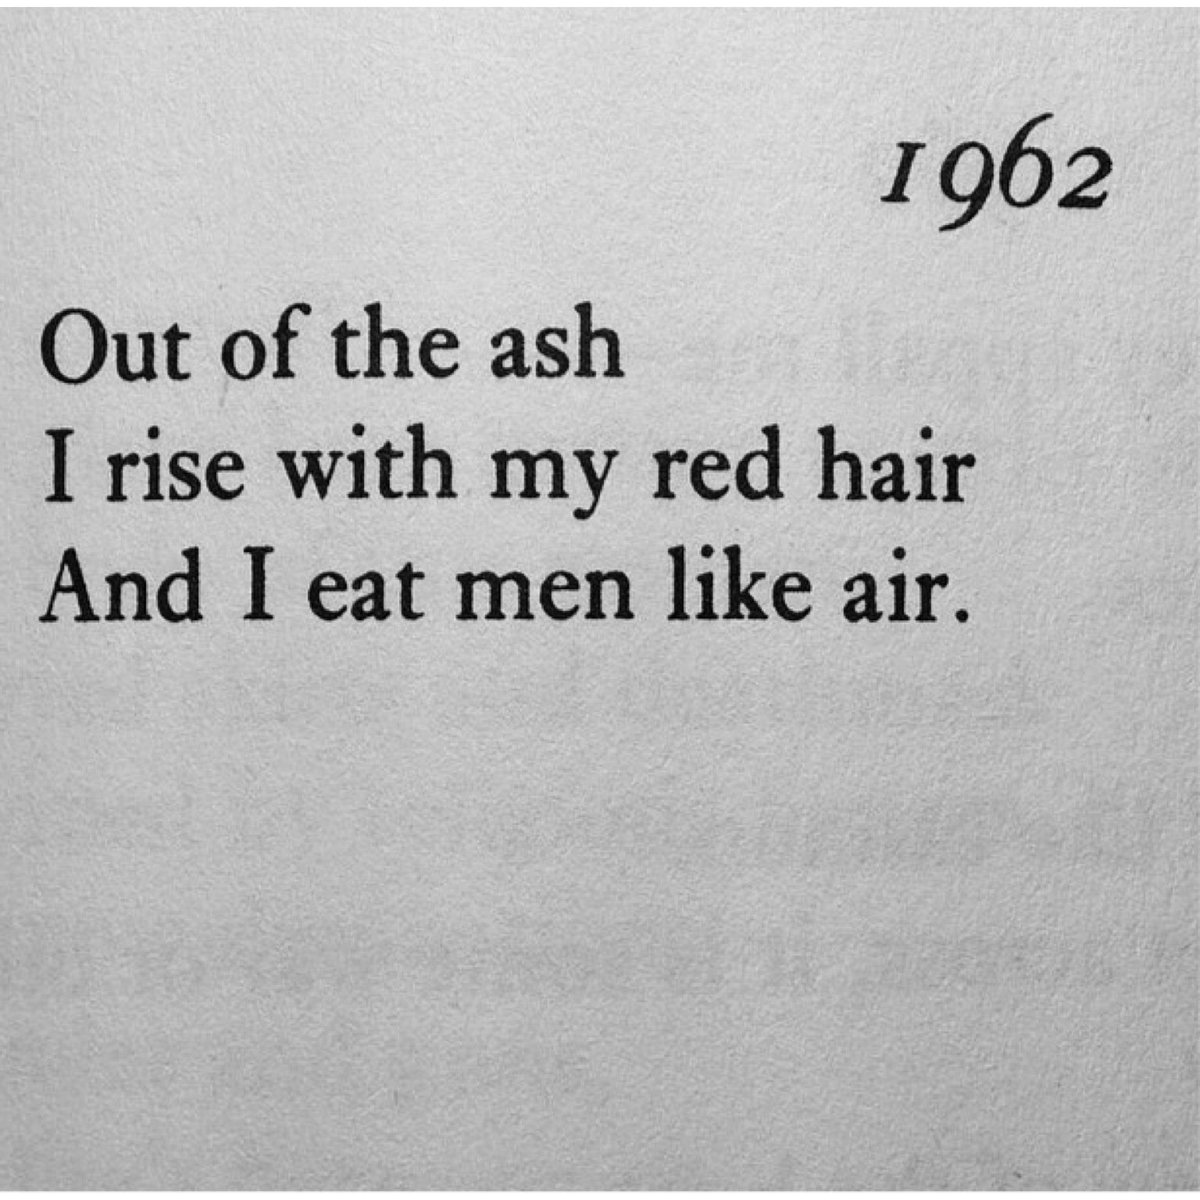 My love of Sylvia Plath has reignited lately. #WorldPoetryDay https://t.co/A5LpXNUL5e